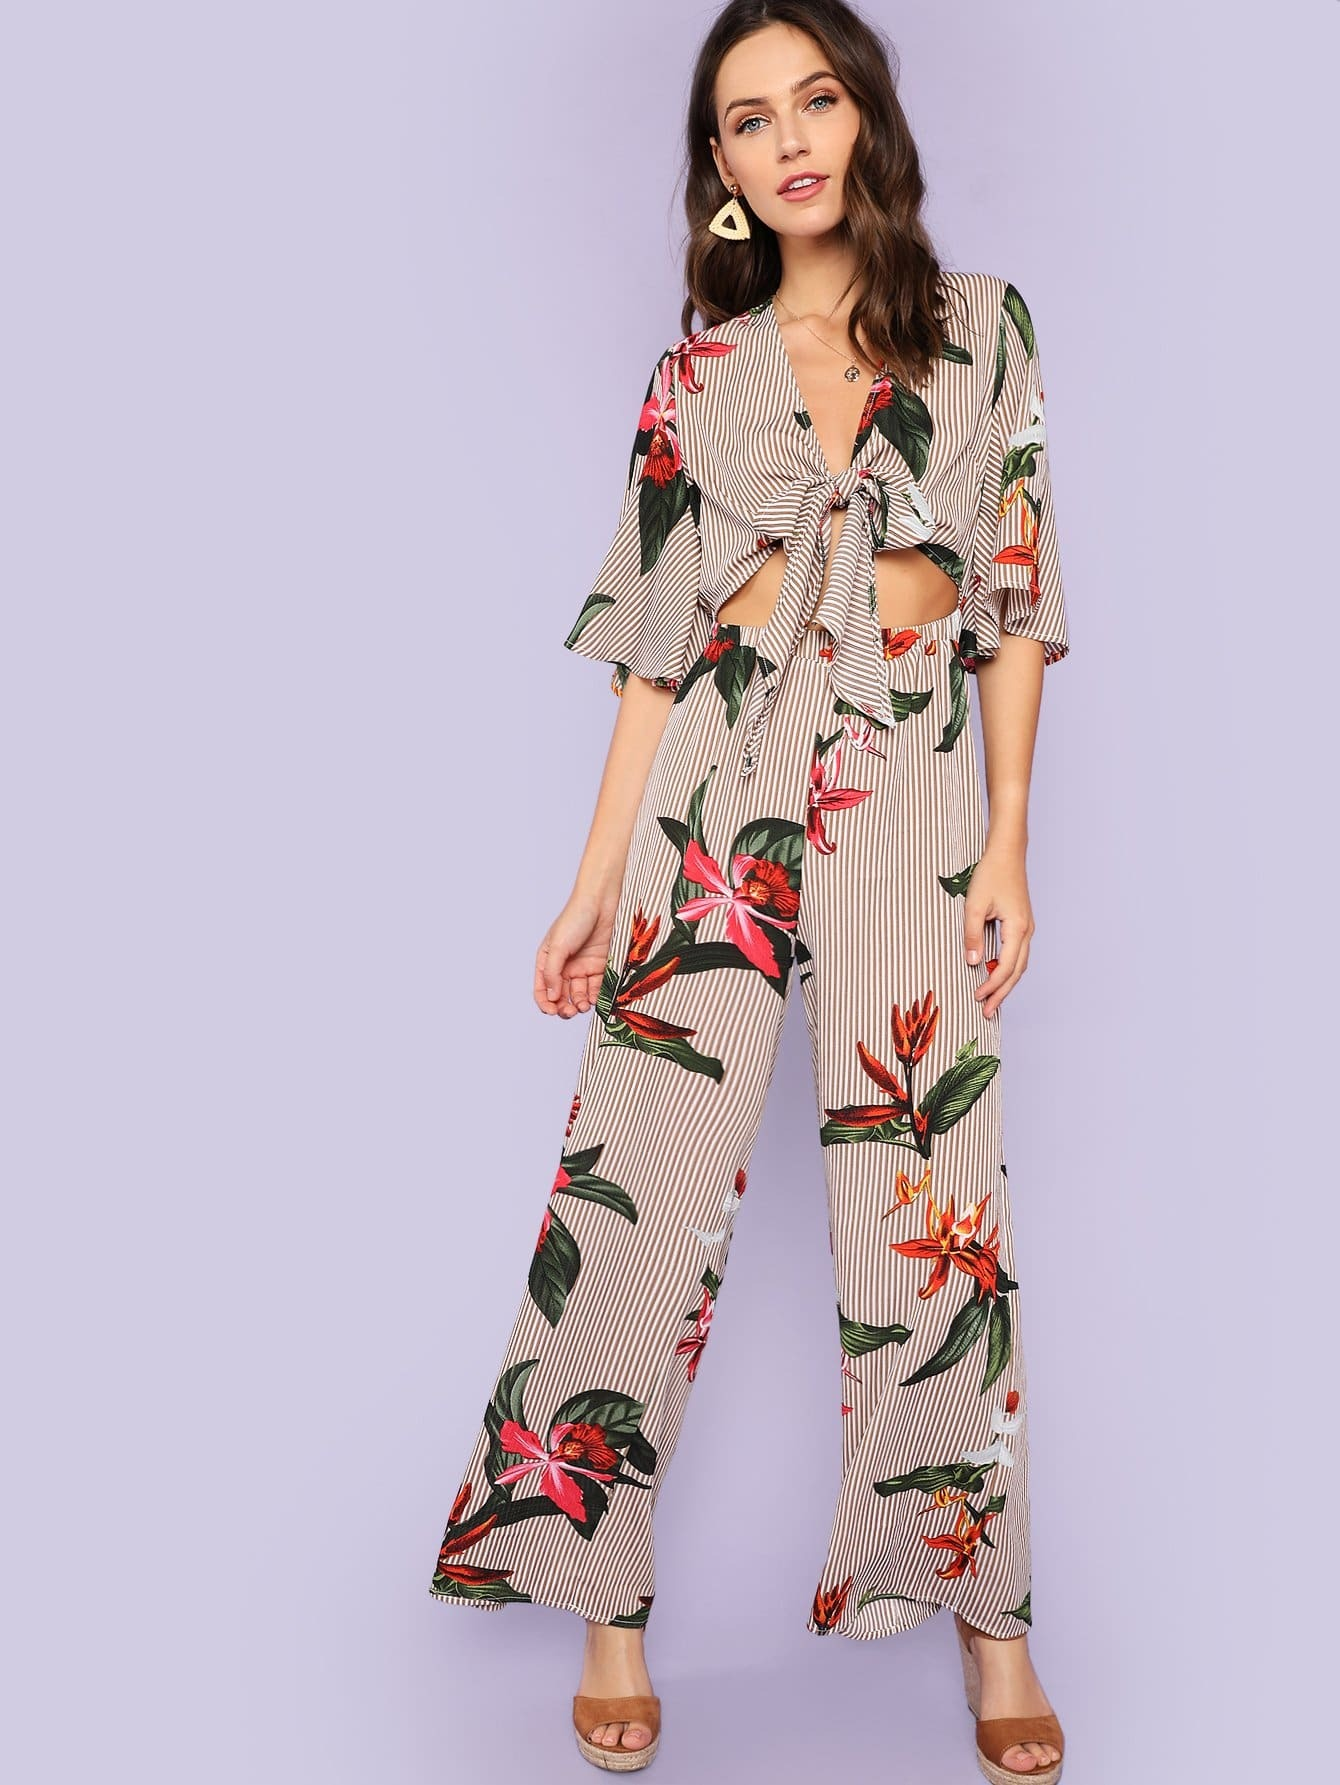 Floral and Striped Print Wide Leg Knot Jumpsuit knot front wide leg printed jumpsuit